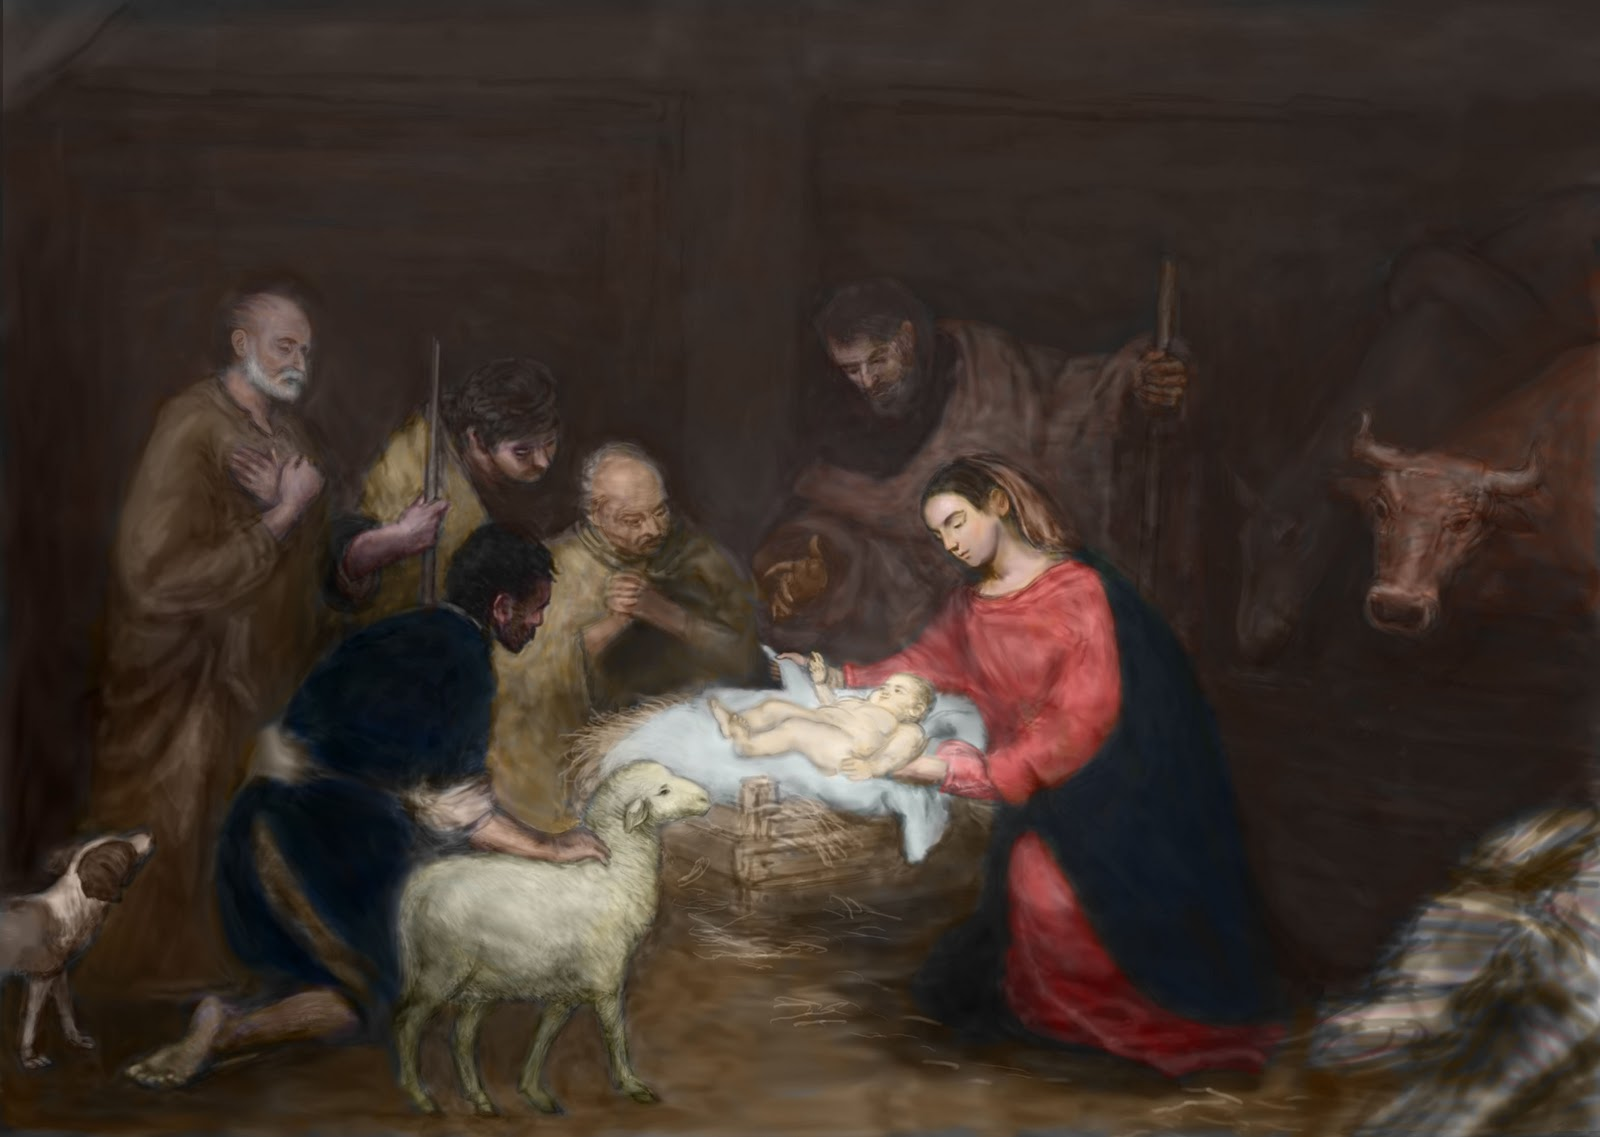 Famous Painting of the Nativity http://wlmosley.blogspot.com/2010/11/nativity_19.html#!